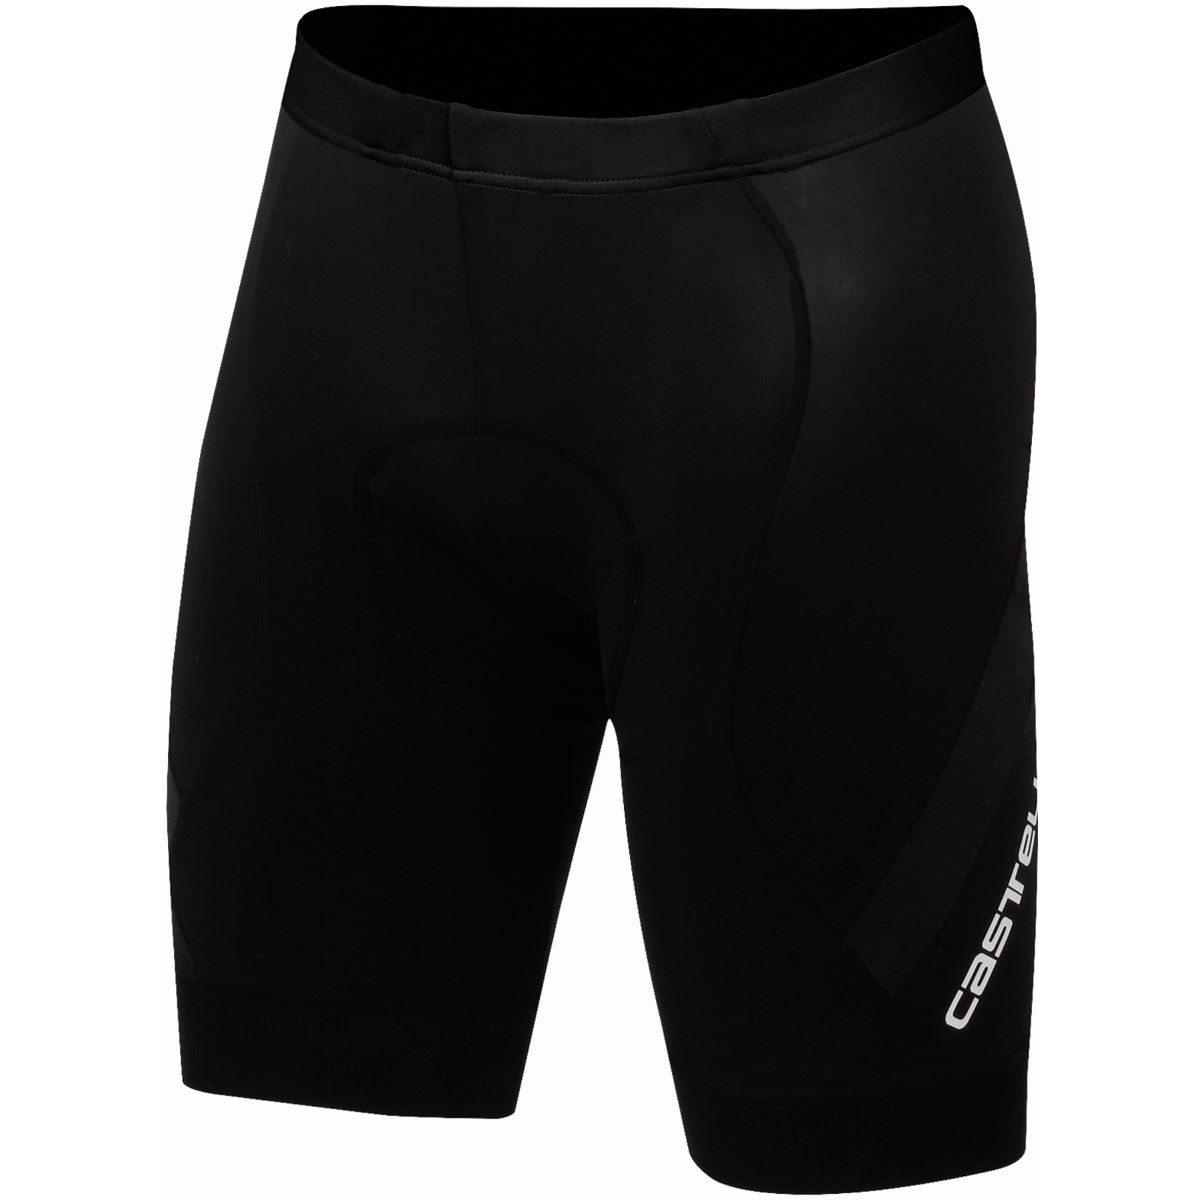 Cuissard court à bretelles Castelli Endurance X2 - XL Black (White Wordmar Cuissards en lycra